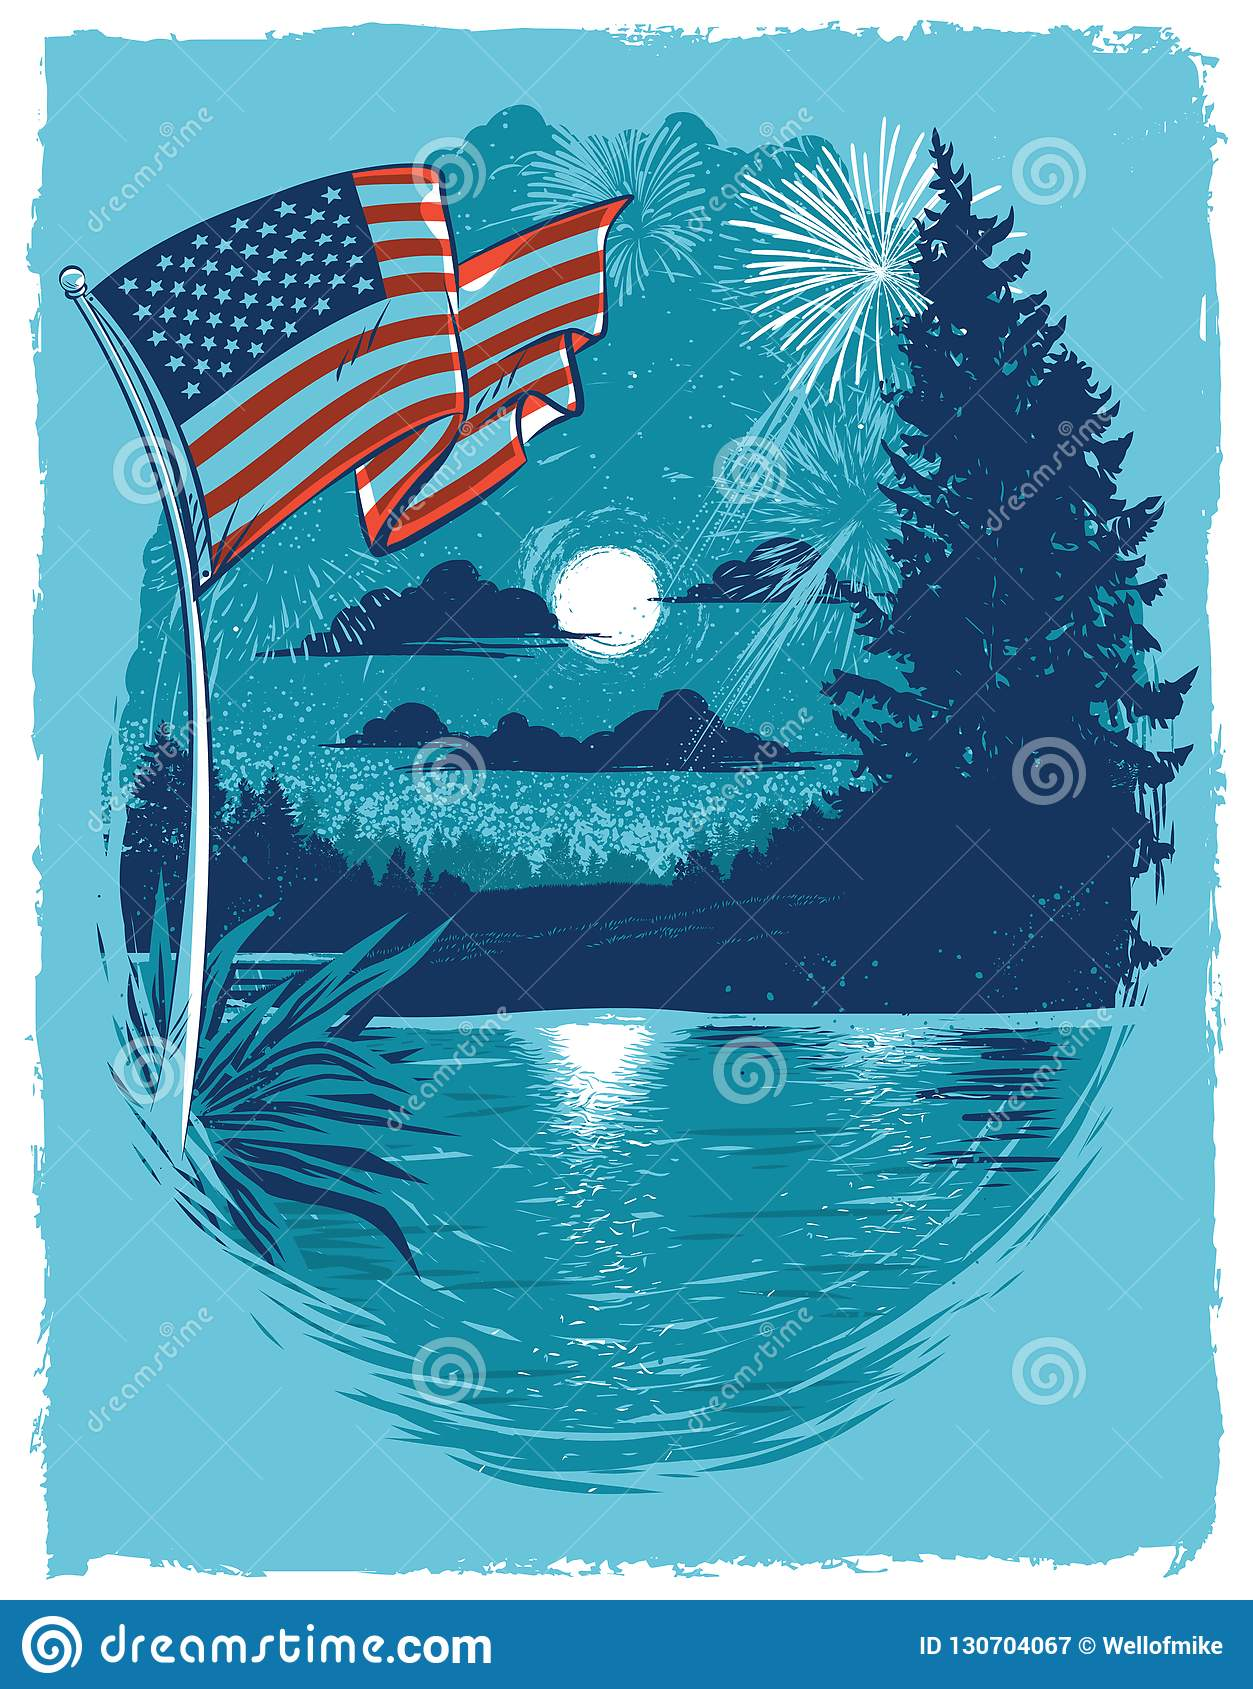 Independence Day Fireworks at the Lake Poster